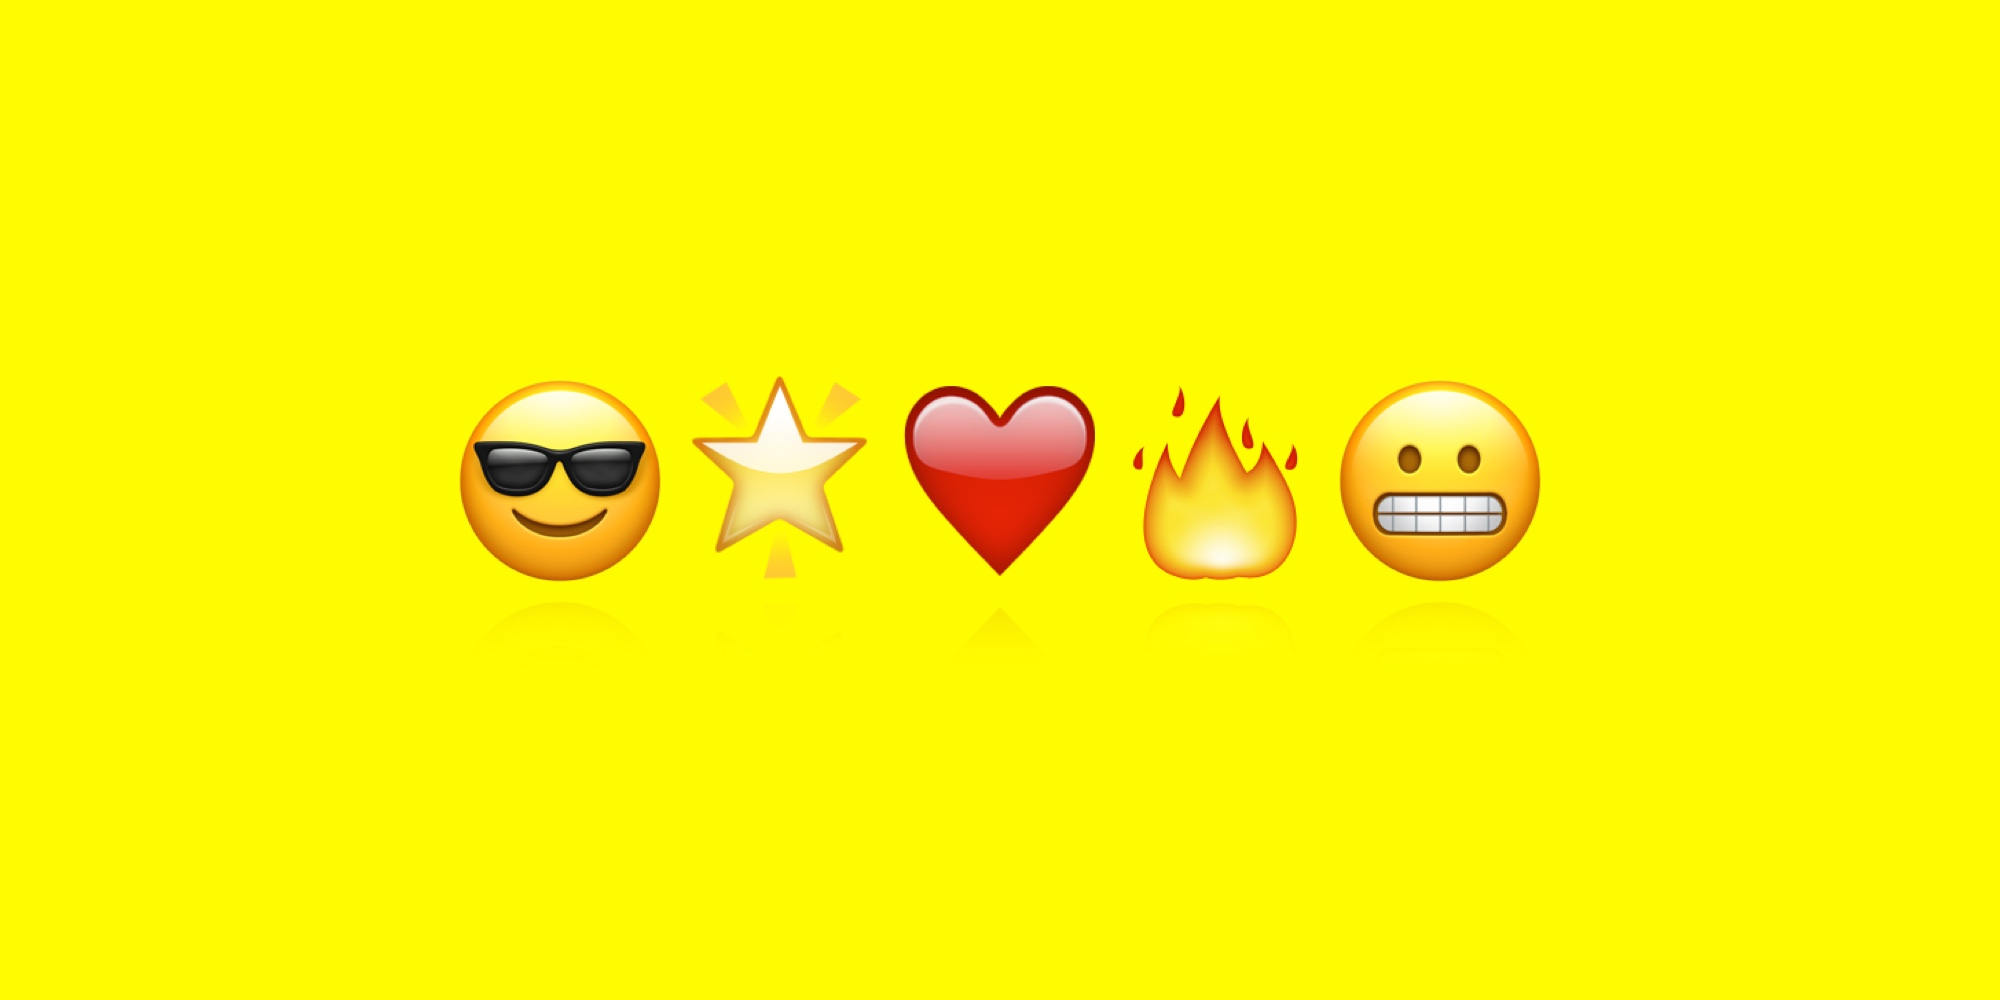 what do the snapchat emojis mean